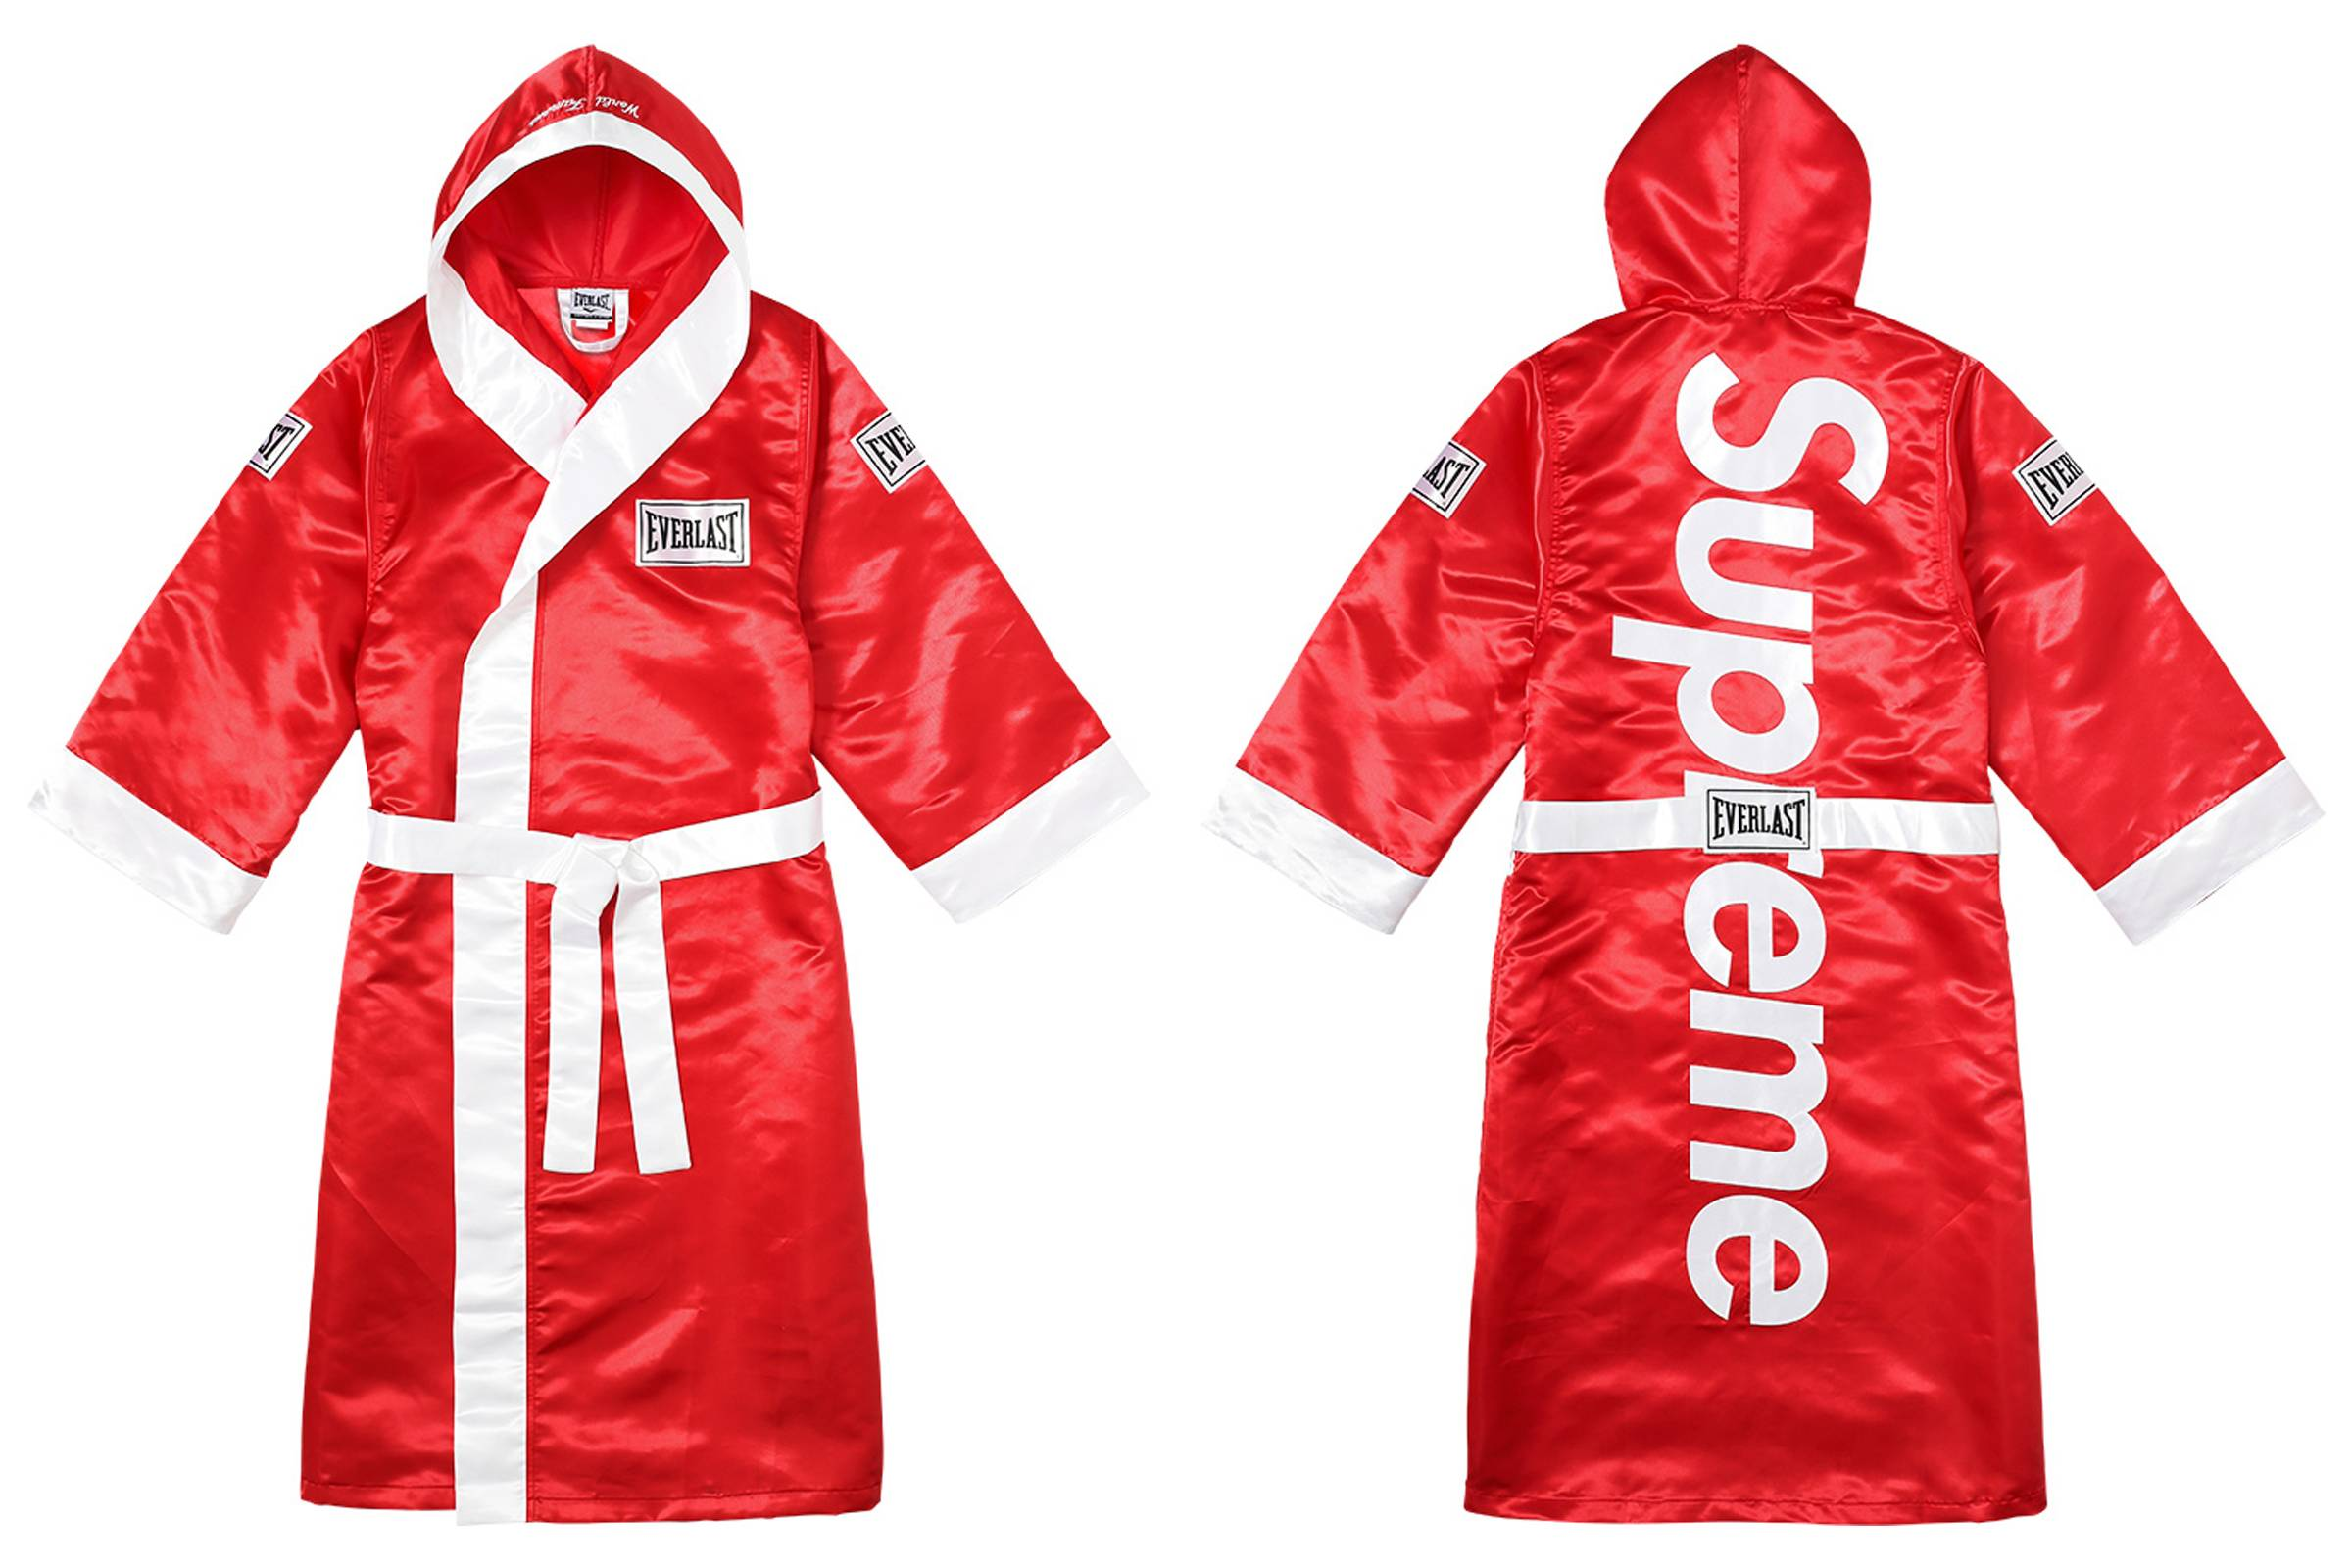 Supreme x Everlast Satin Hooded Robe